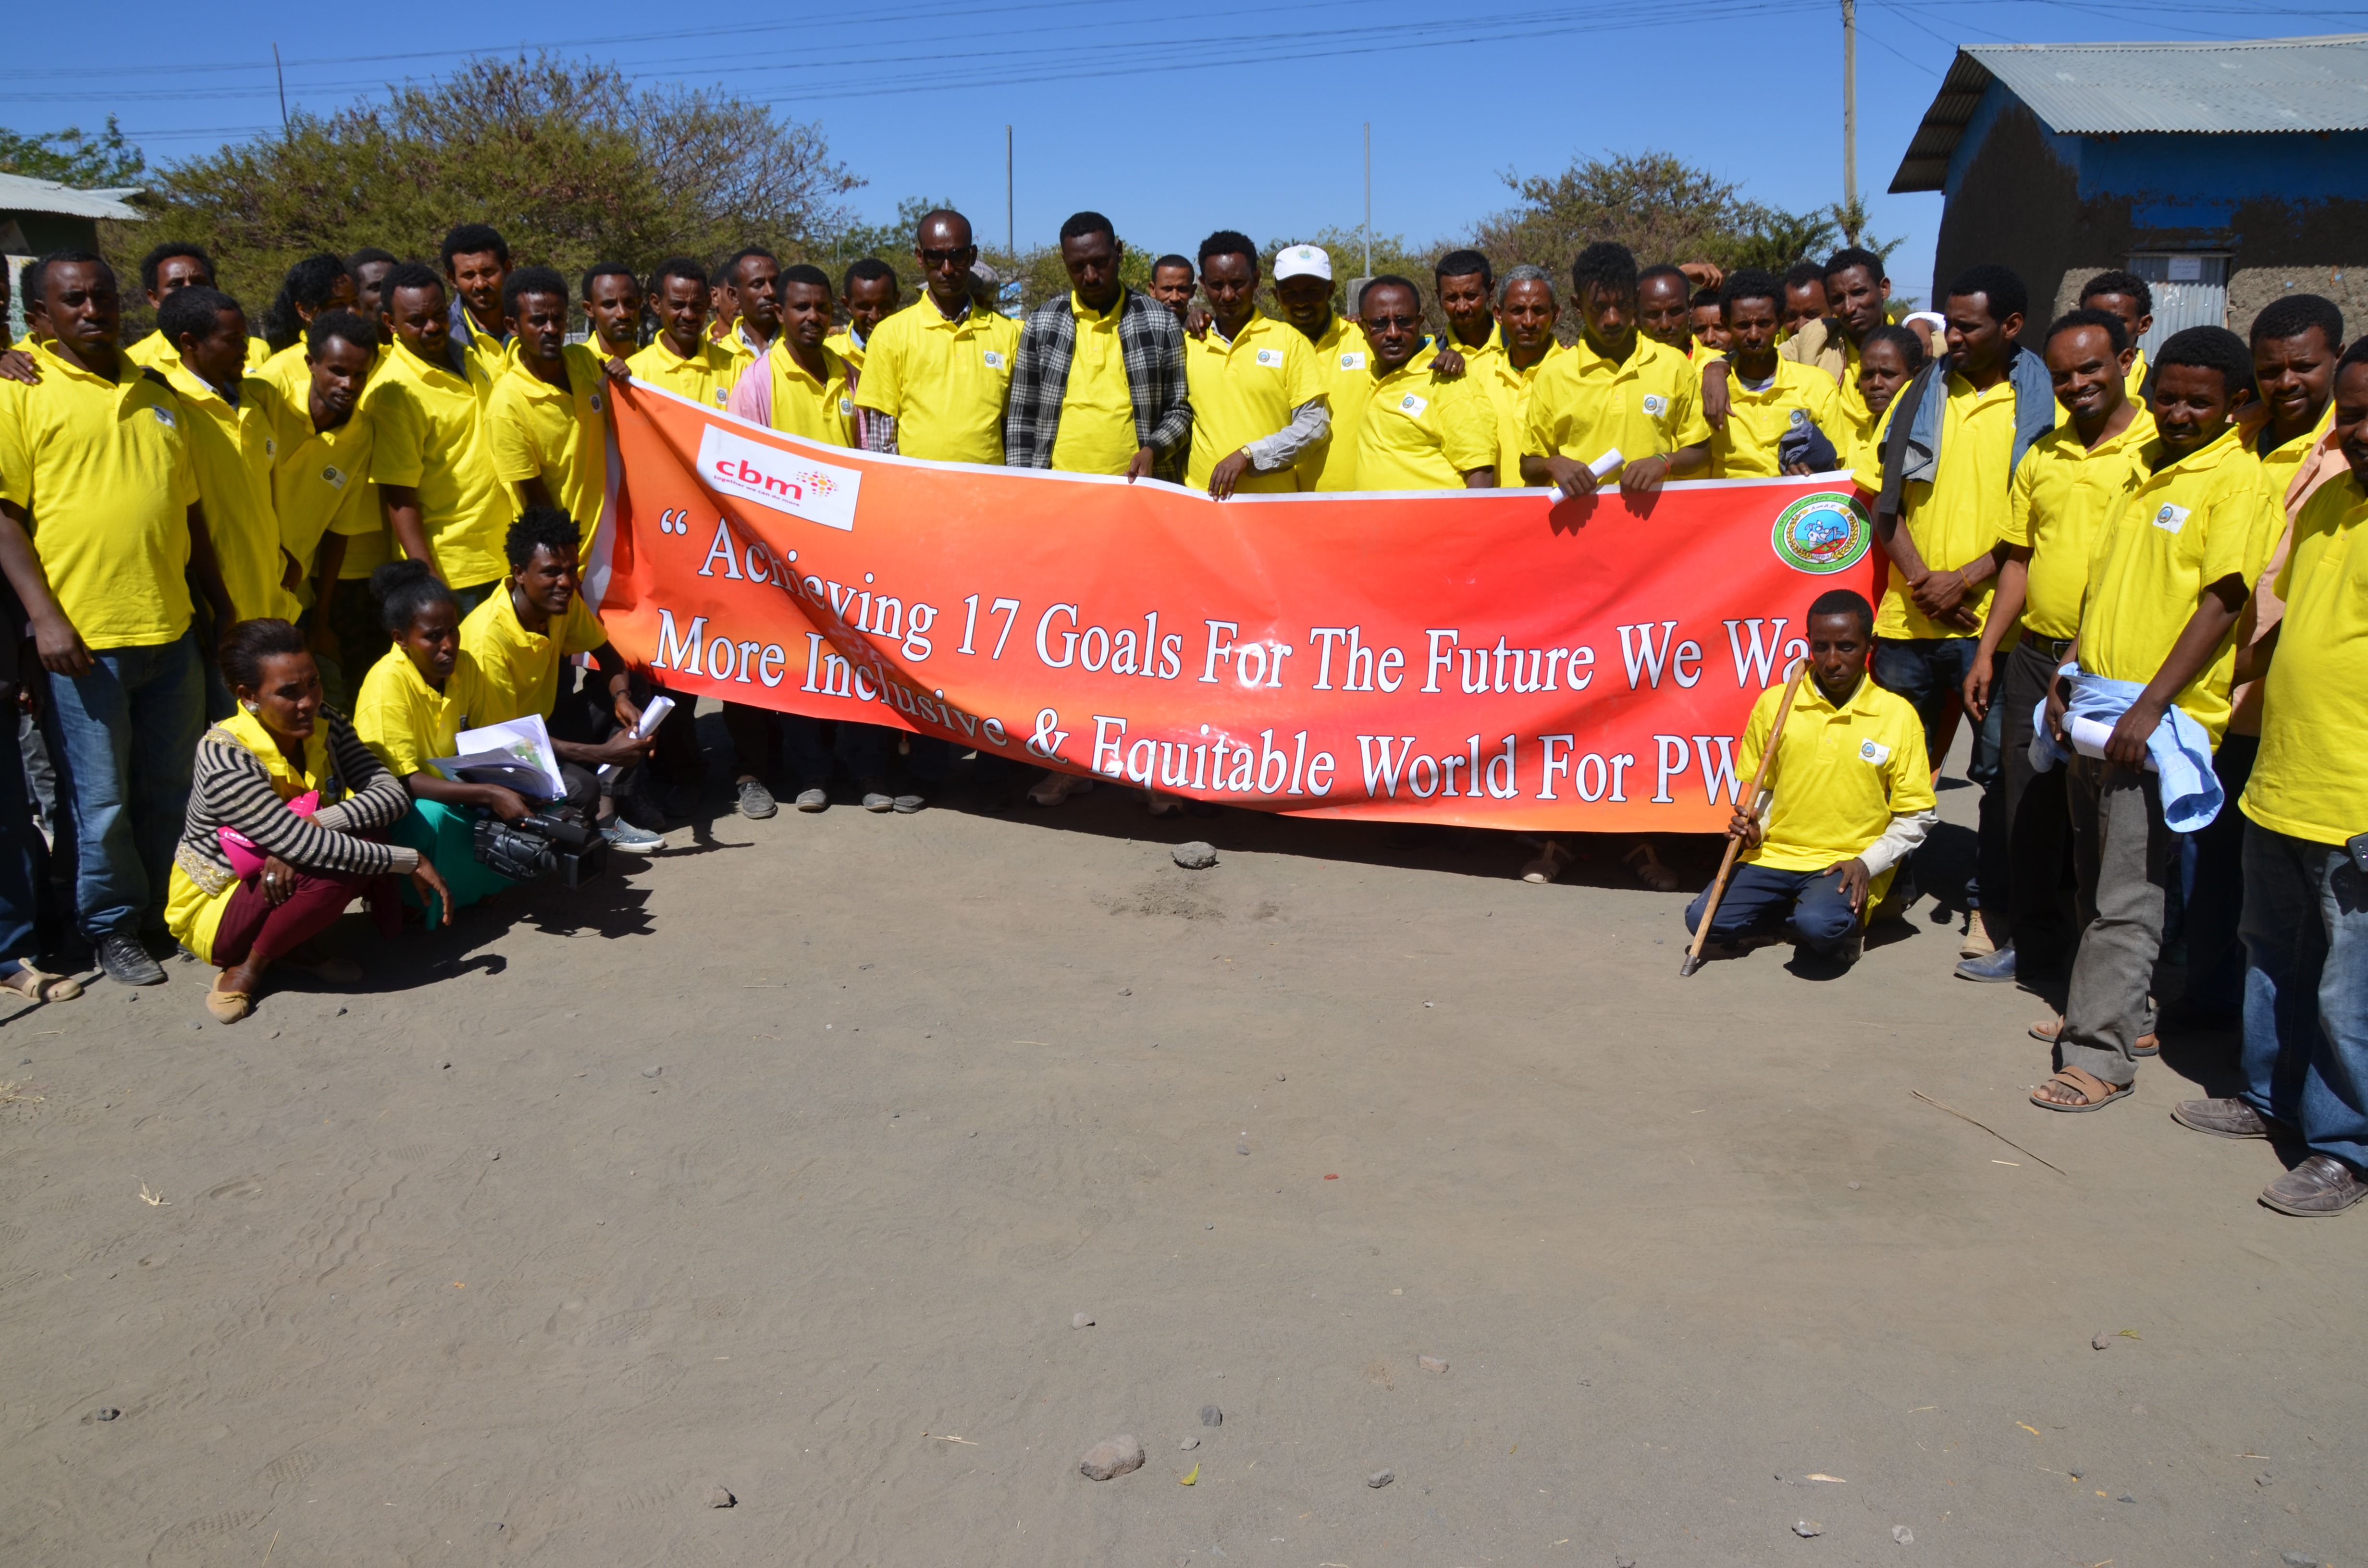 The International Day for Persons with Disabilities Colorfully Celebrated